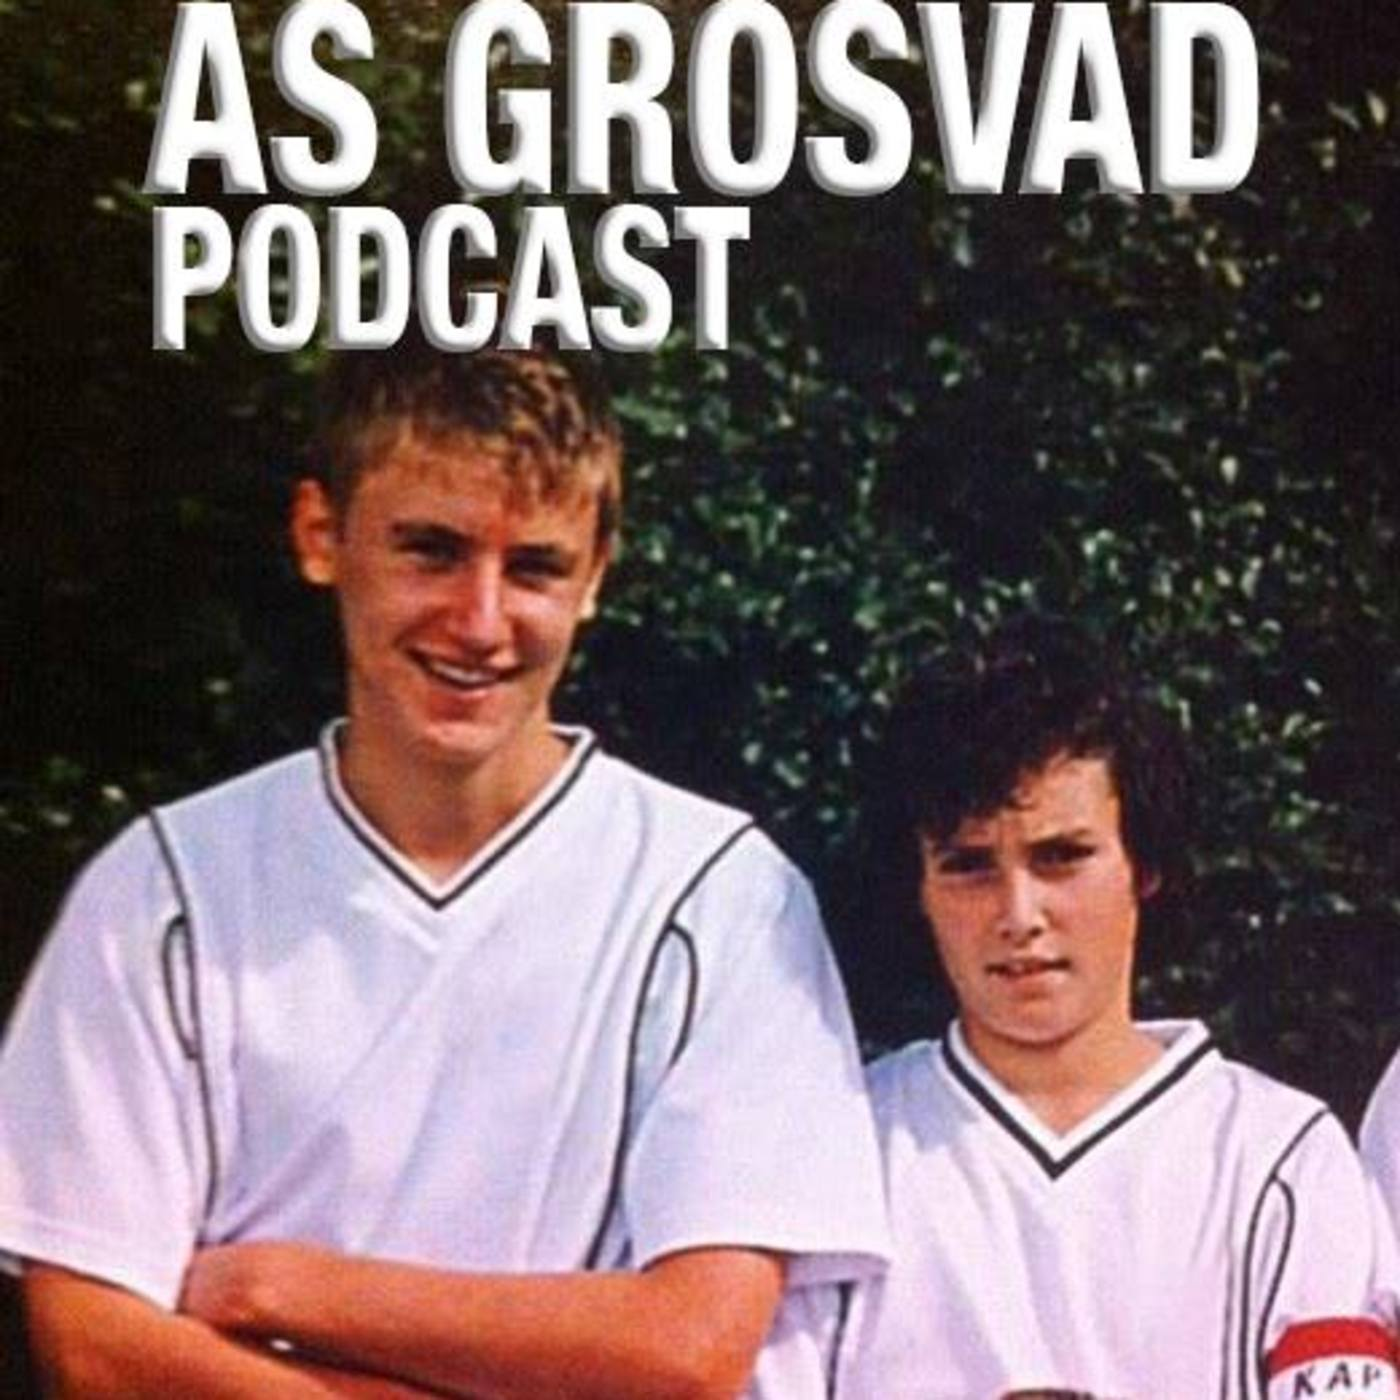 AS Grosvad Podcast